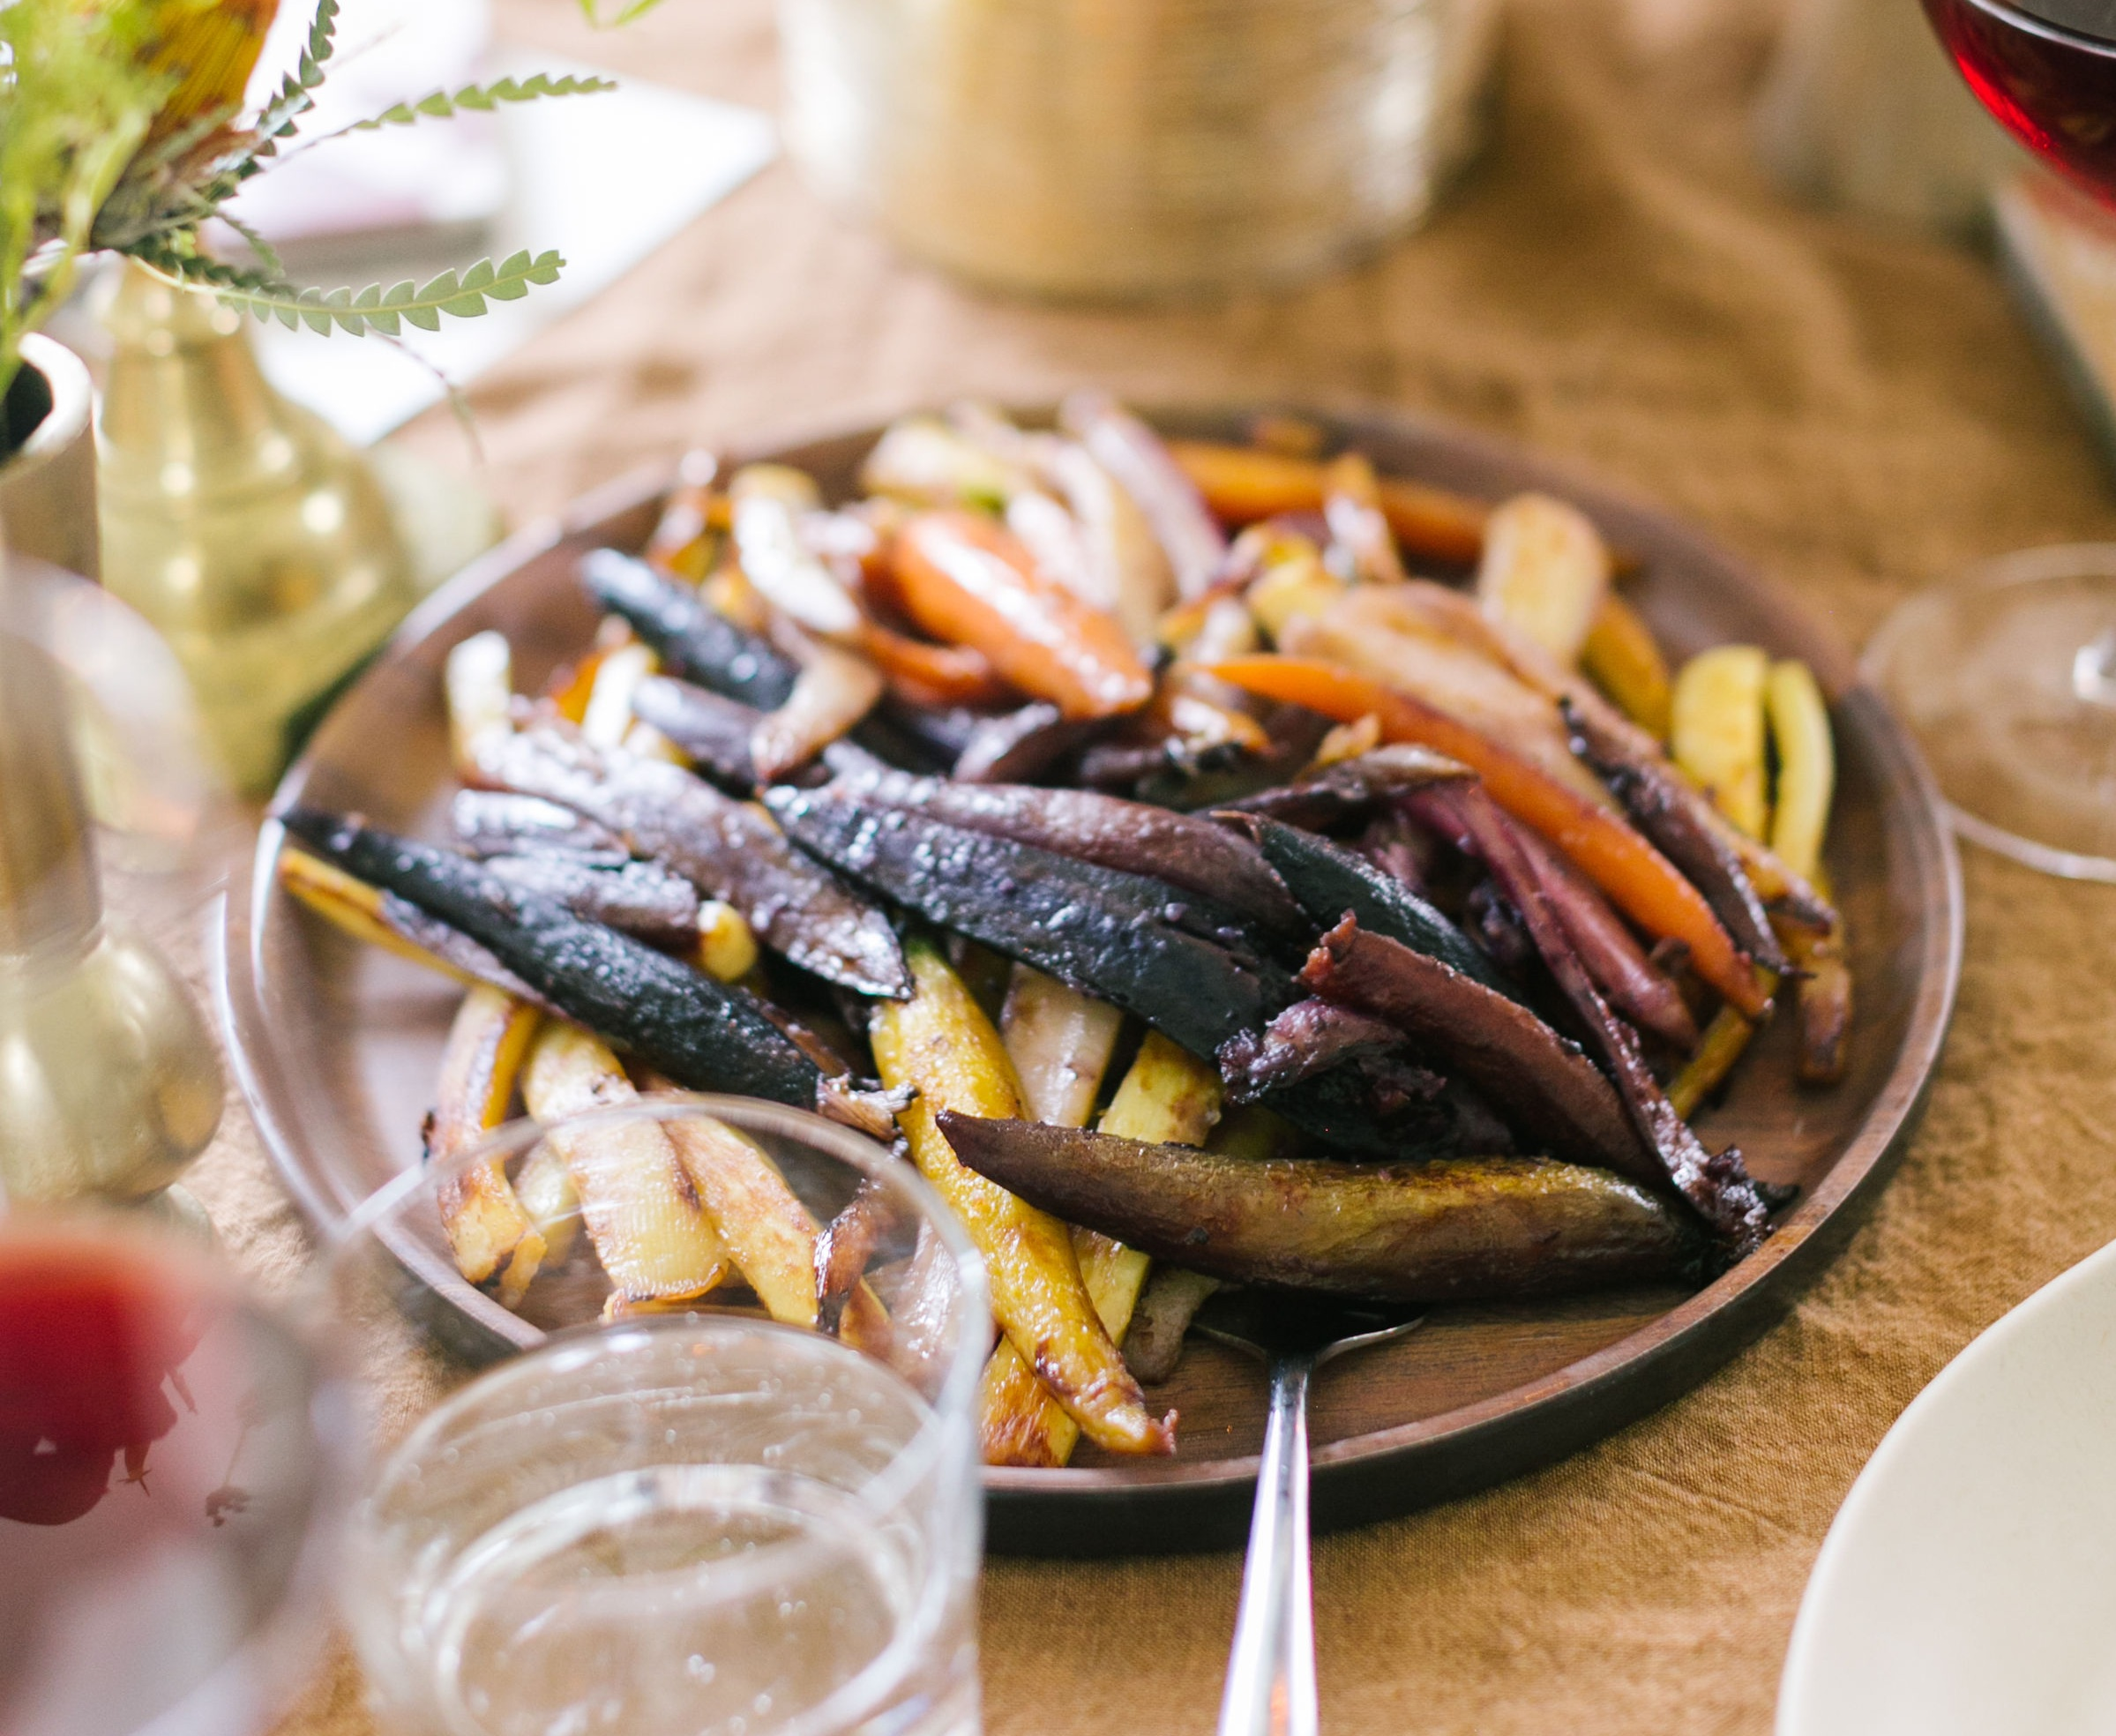 Butter-glazed Rainbow Carrots (photo by Olivia Williamson)